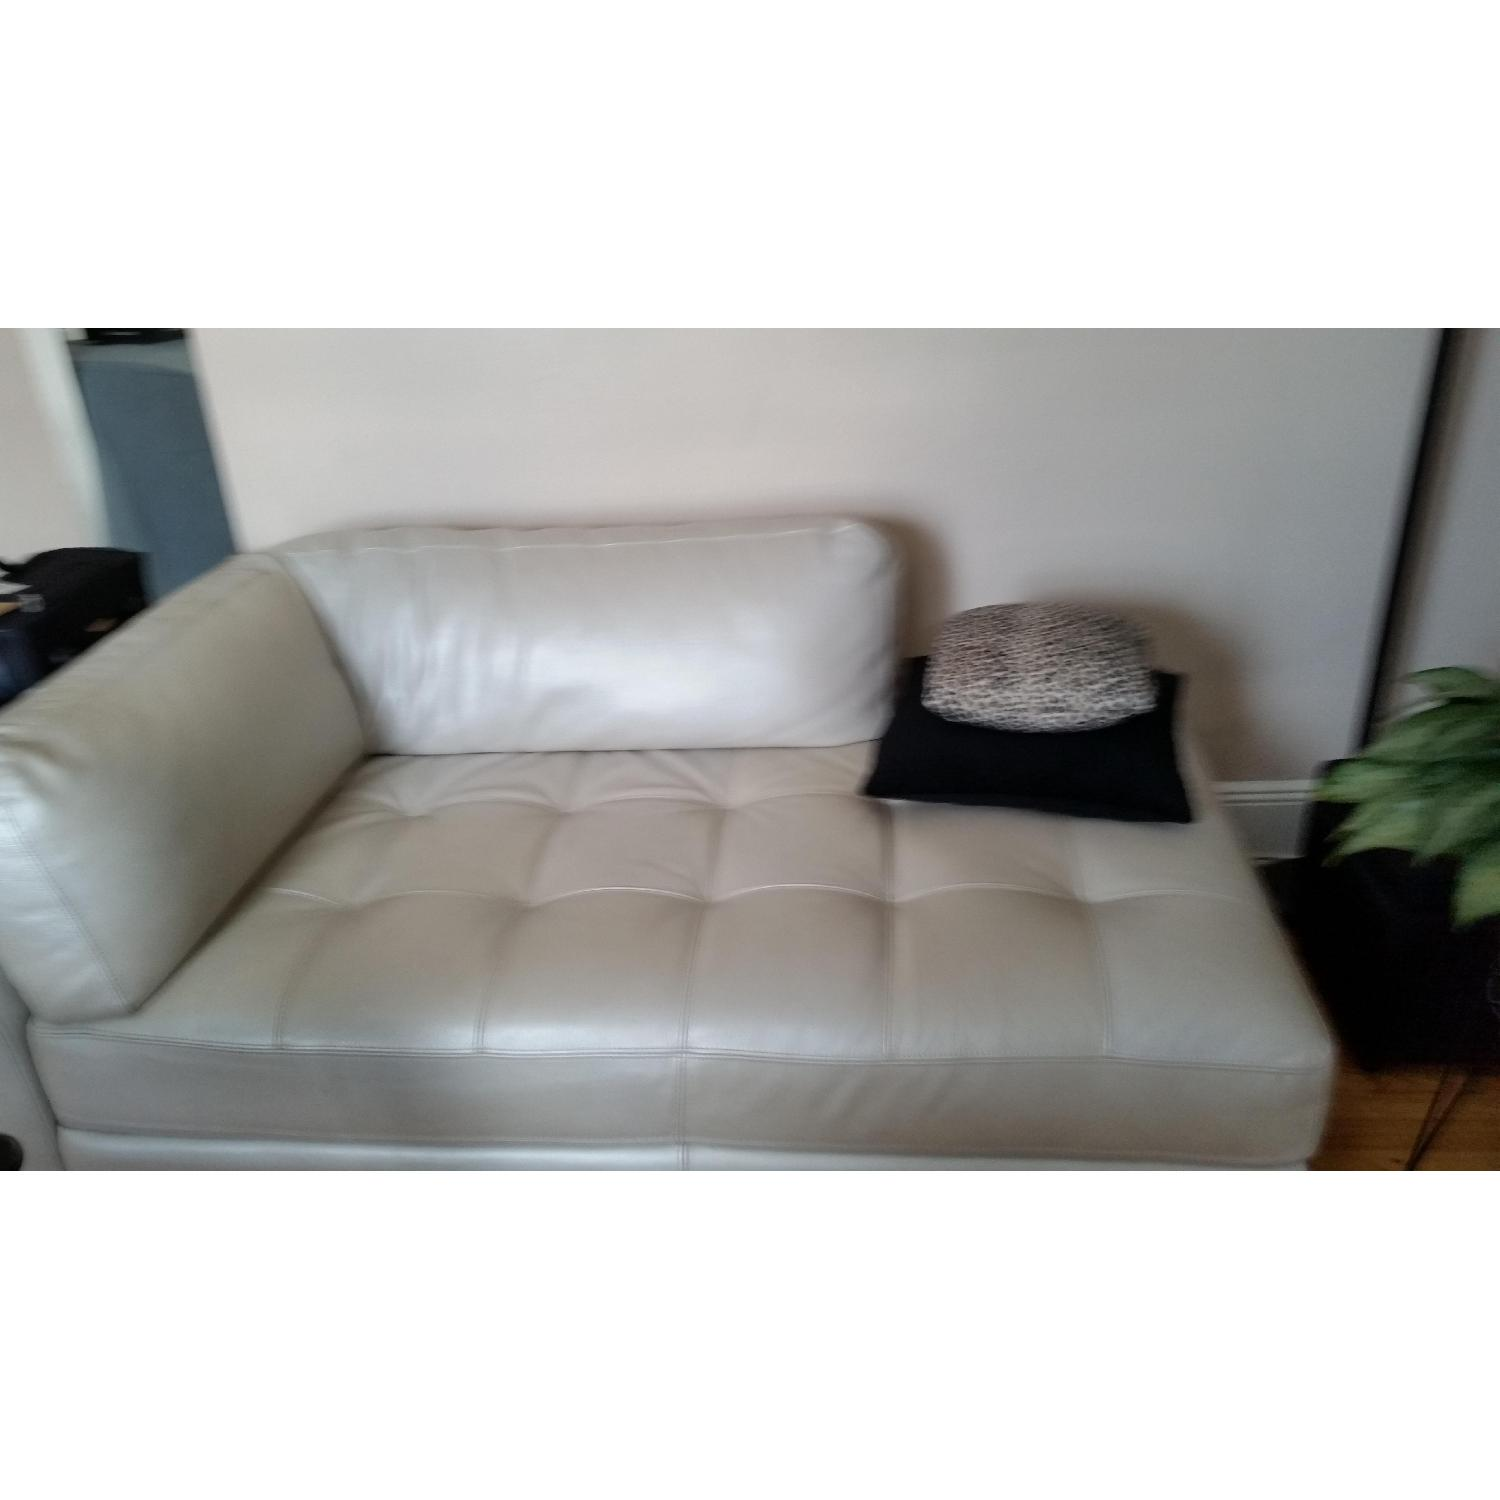 Chateau dAx Leather Sectional + Glass Table - image-2